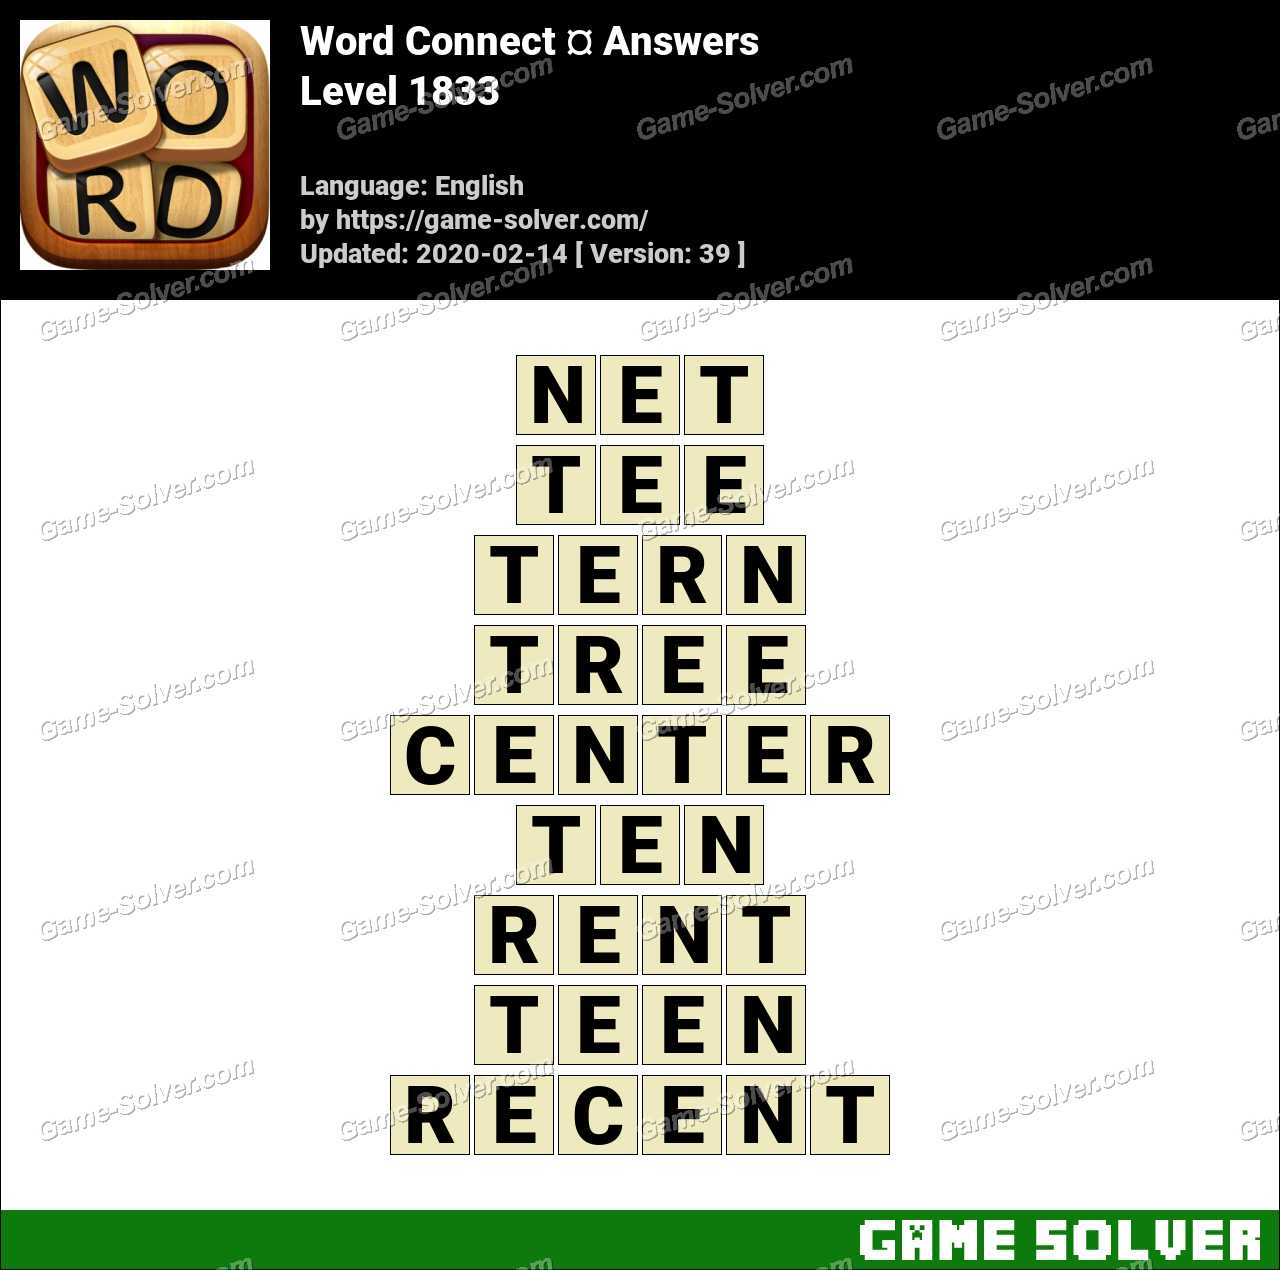 Word Connect Level 1833 Answers